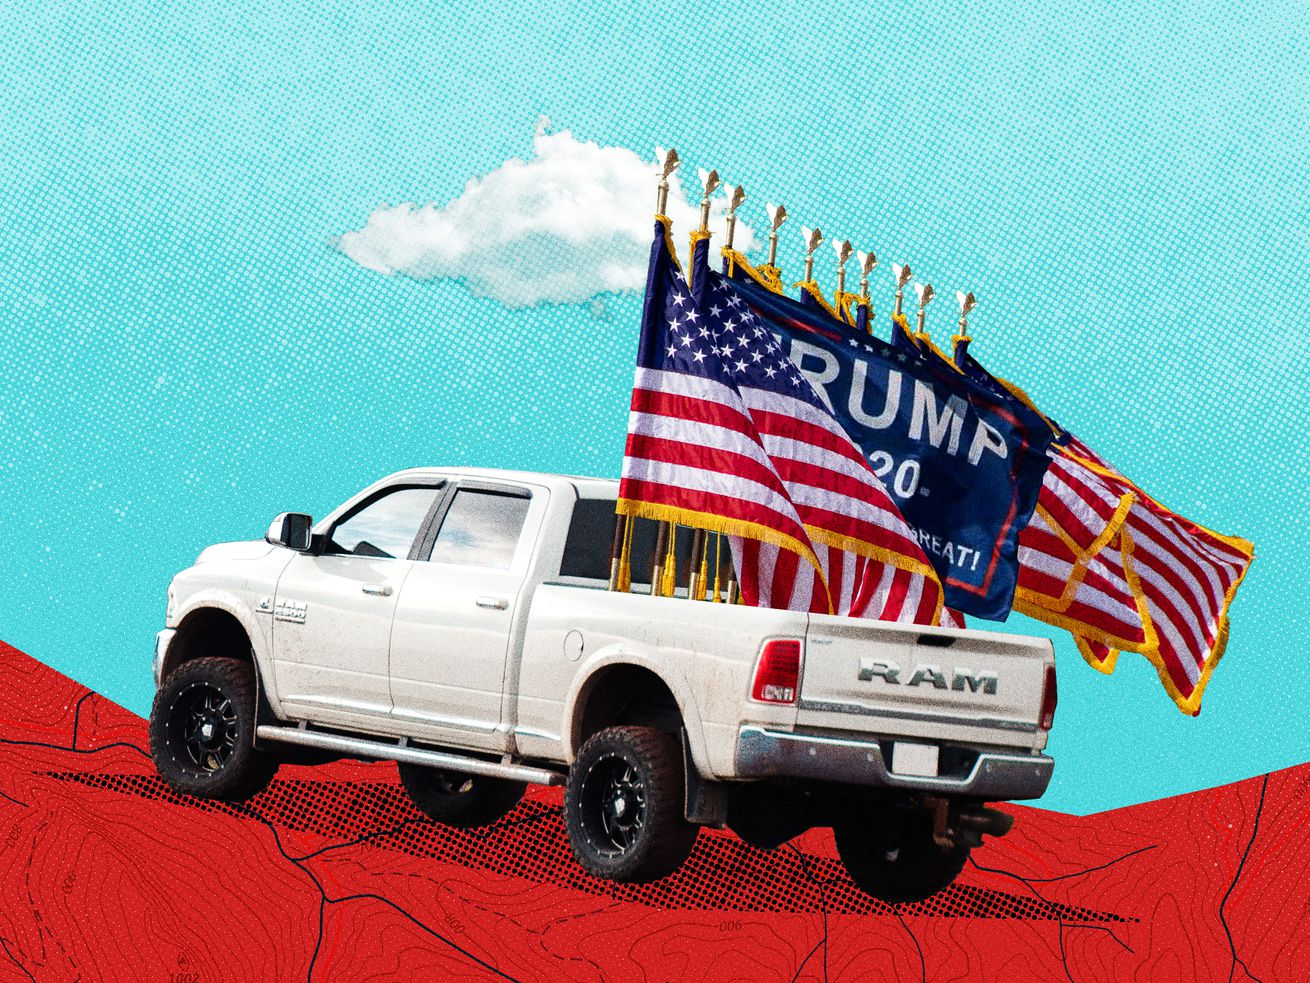 Big flags on big trucks: What these displays say about the upcoming election